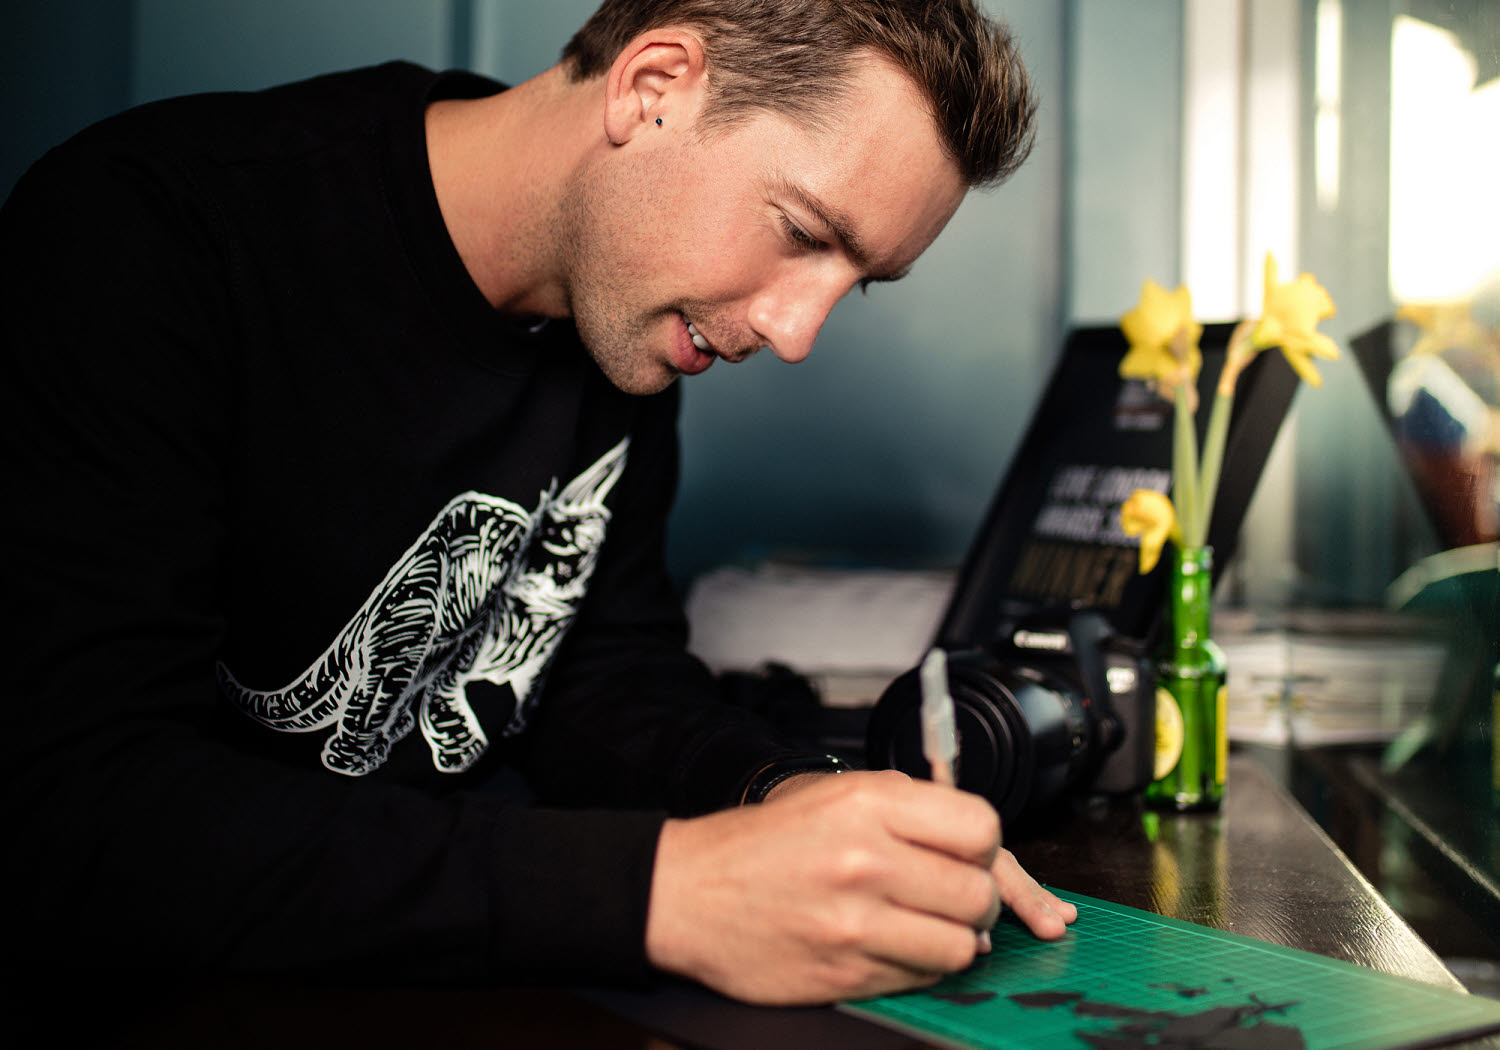 rich mccor working on paperboard cut-outs